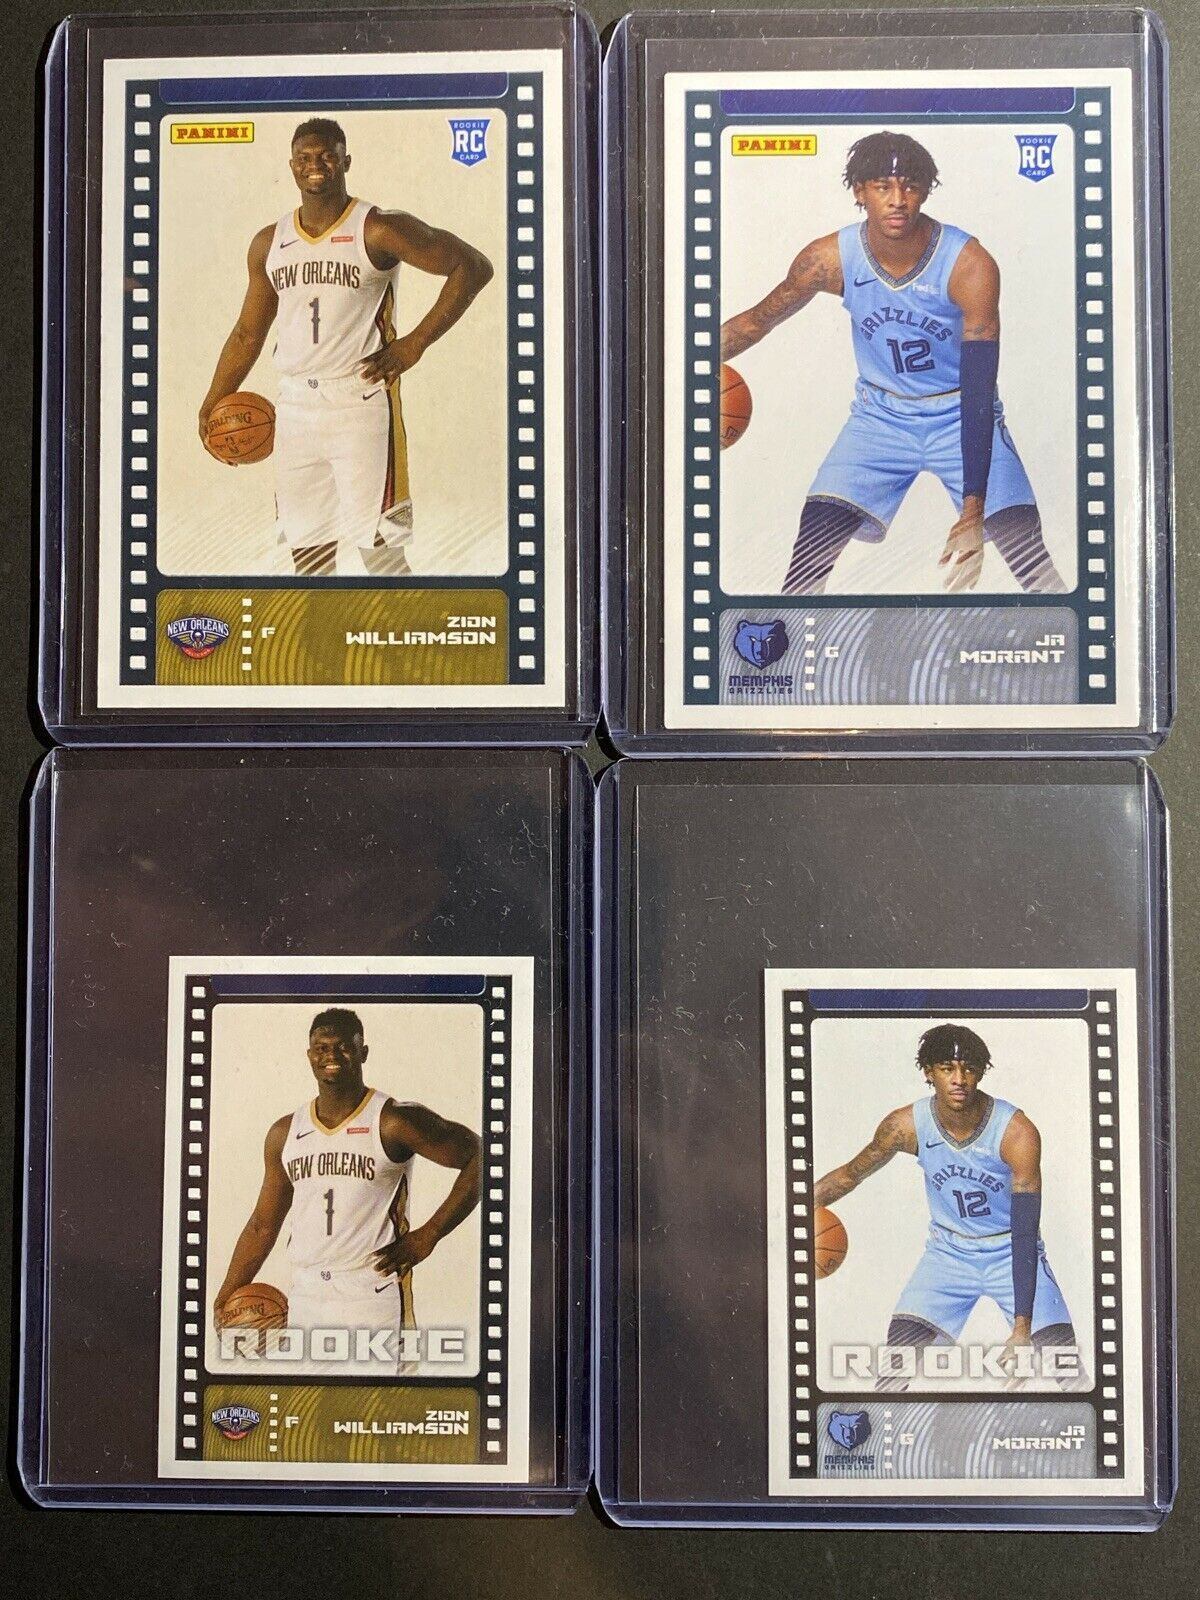 Panini Sticker And Card Collection Zion Williamson Ja Morant Rookie Cards Lotx4 In 2020 Cards Basketball Cards Memphis Grizzlies